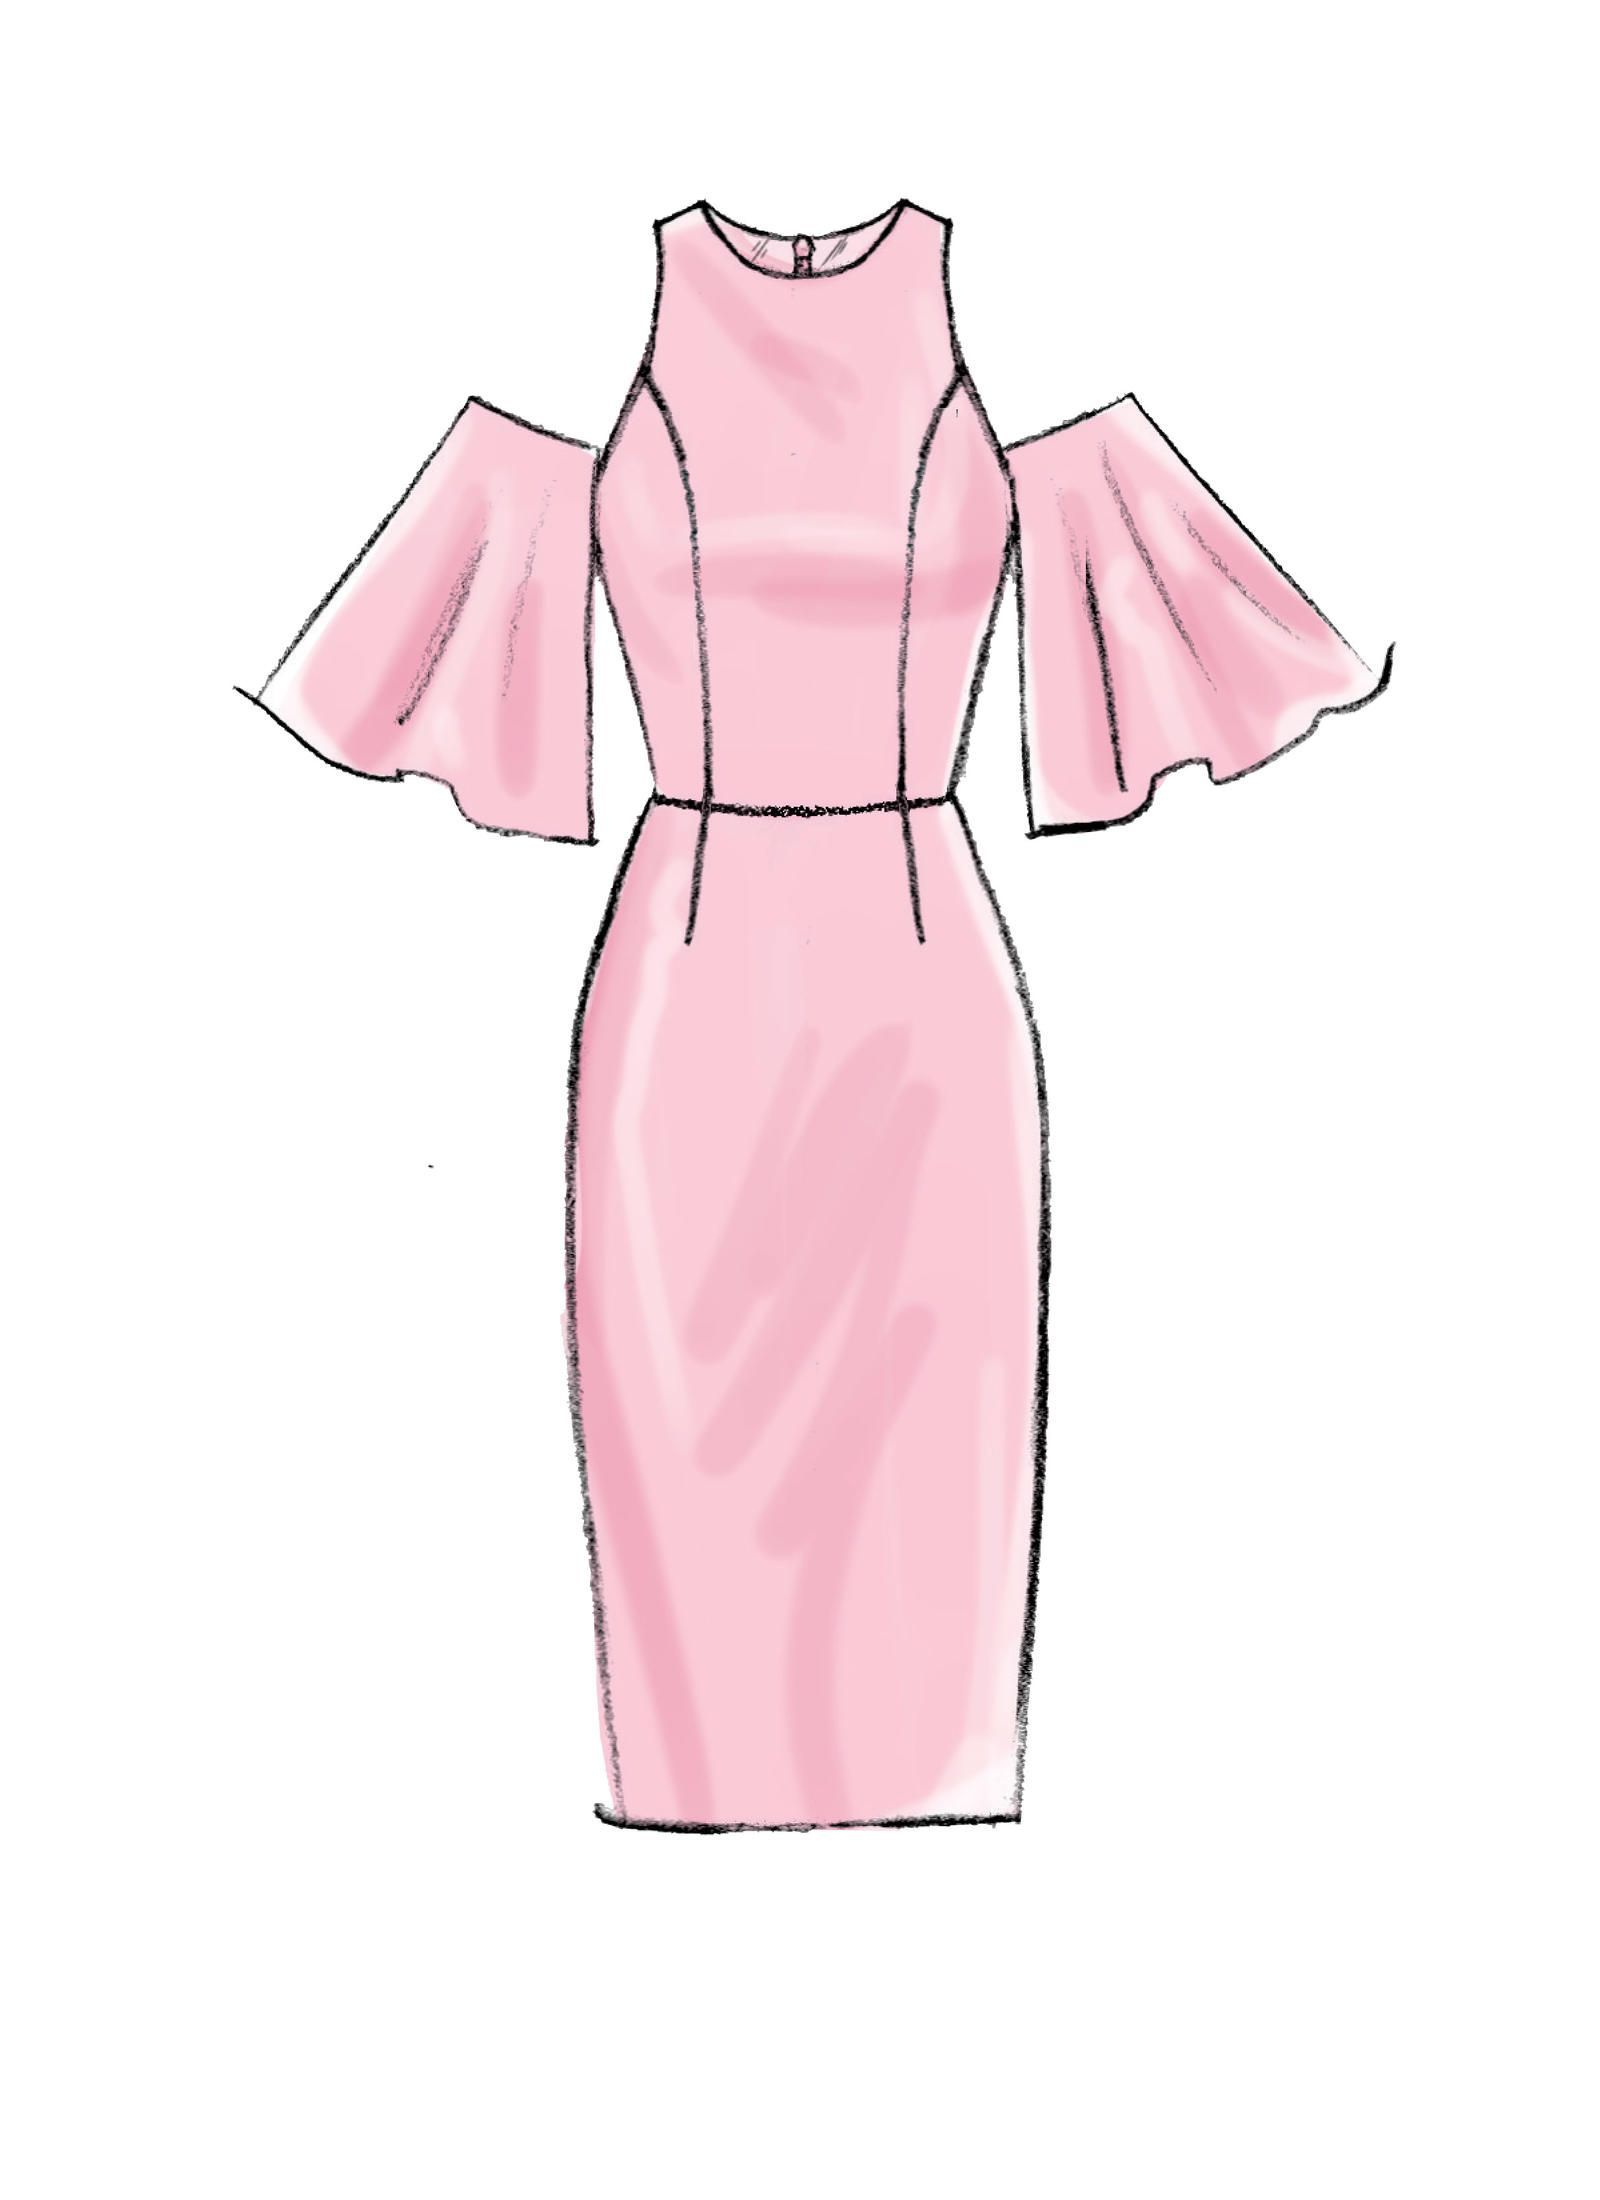 10 Exhilarating Draw A Fashionable Dress Ideas In 2020 Dress Design Sketches Dress Design Drawing Fashion Design Clothes